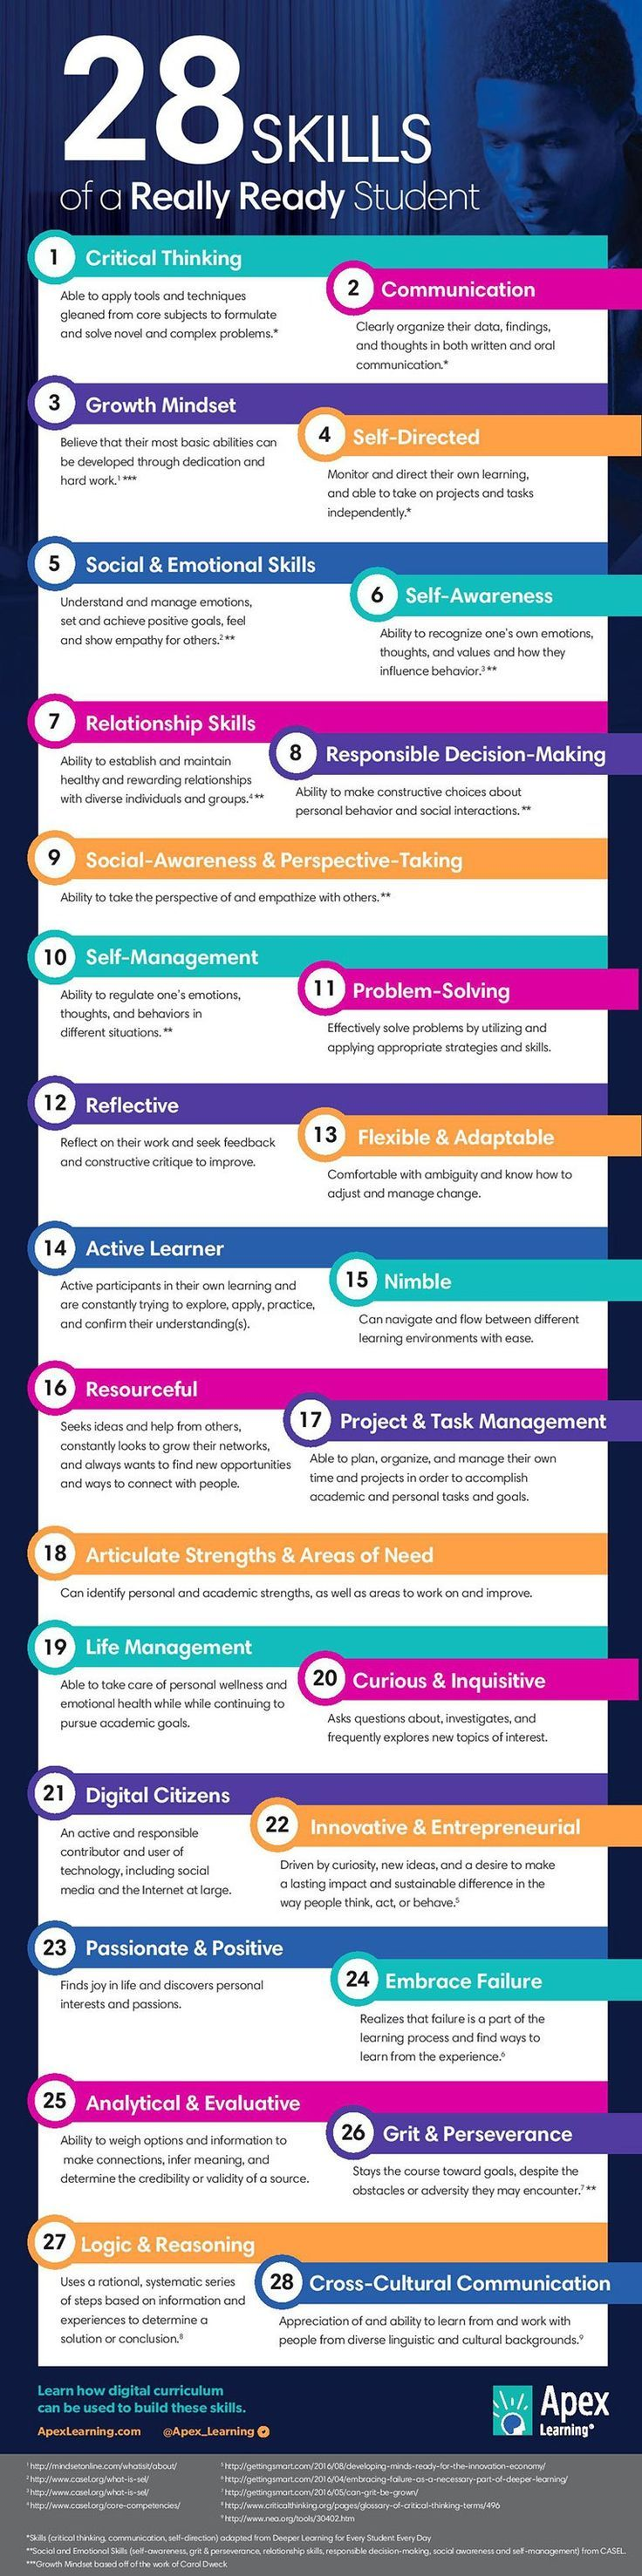 8 best keep on studyn images on pinterest nursing schools 28 skills of a really ready student infographic what are the skills that define student readiness for taking on college or careers fandeluxe Images